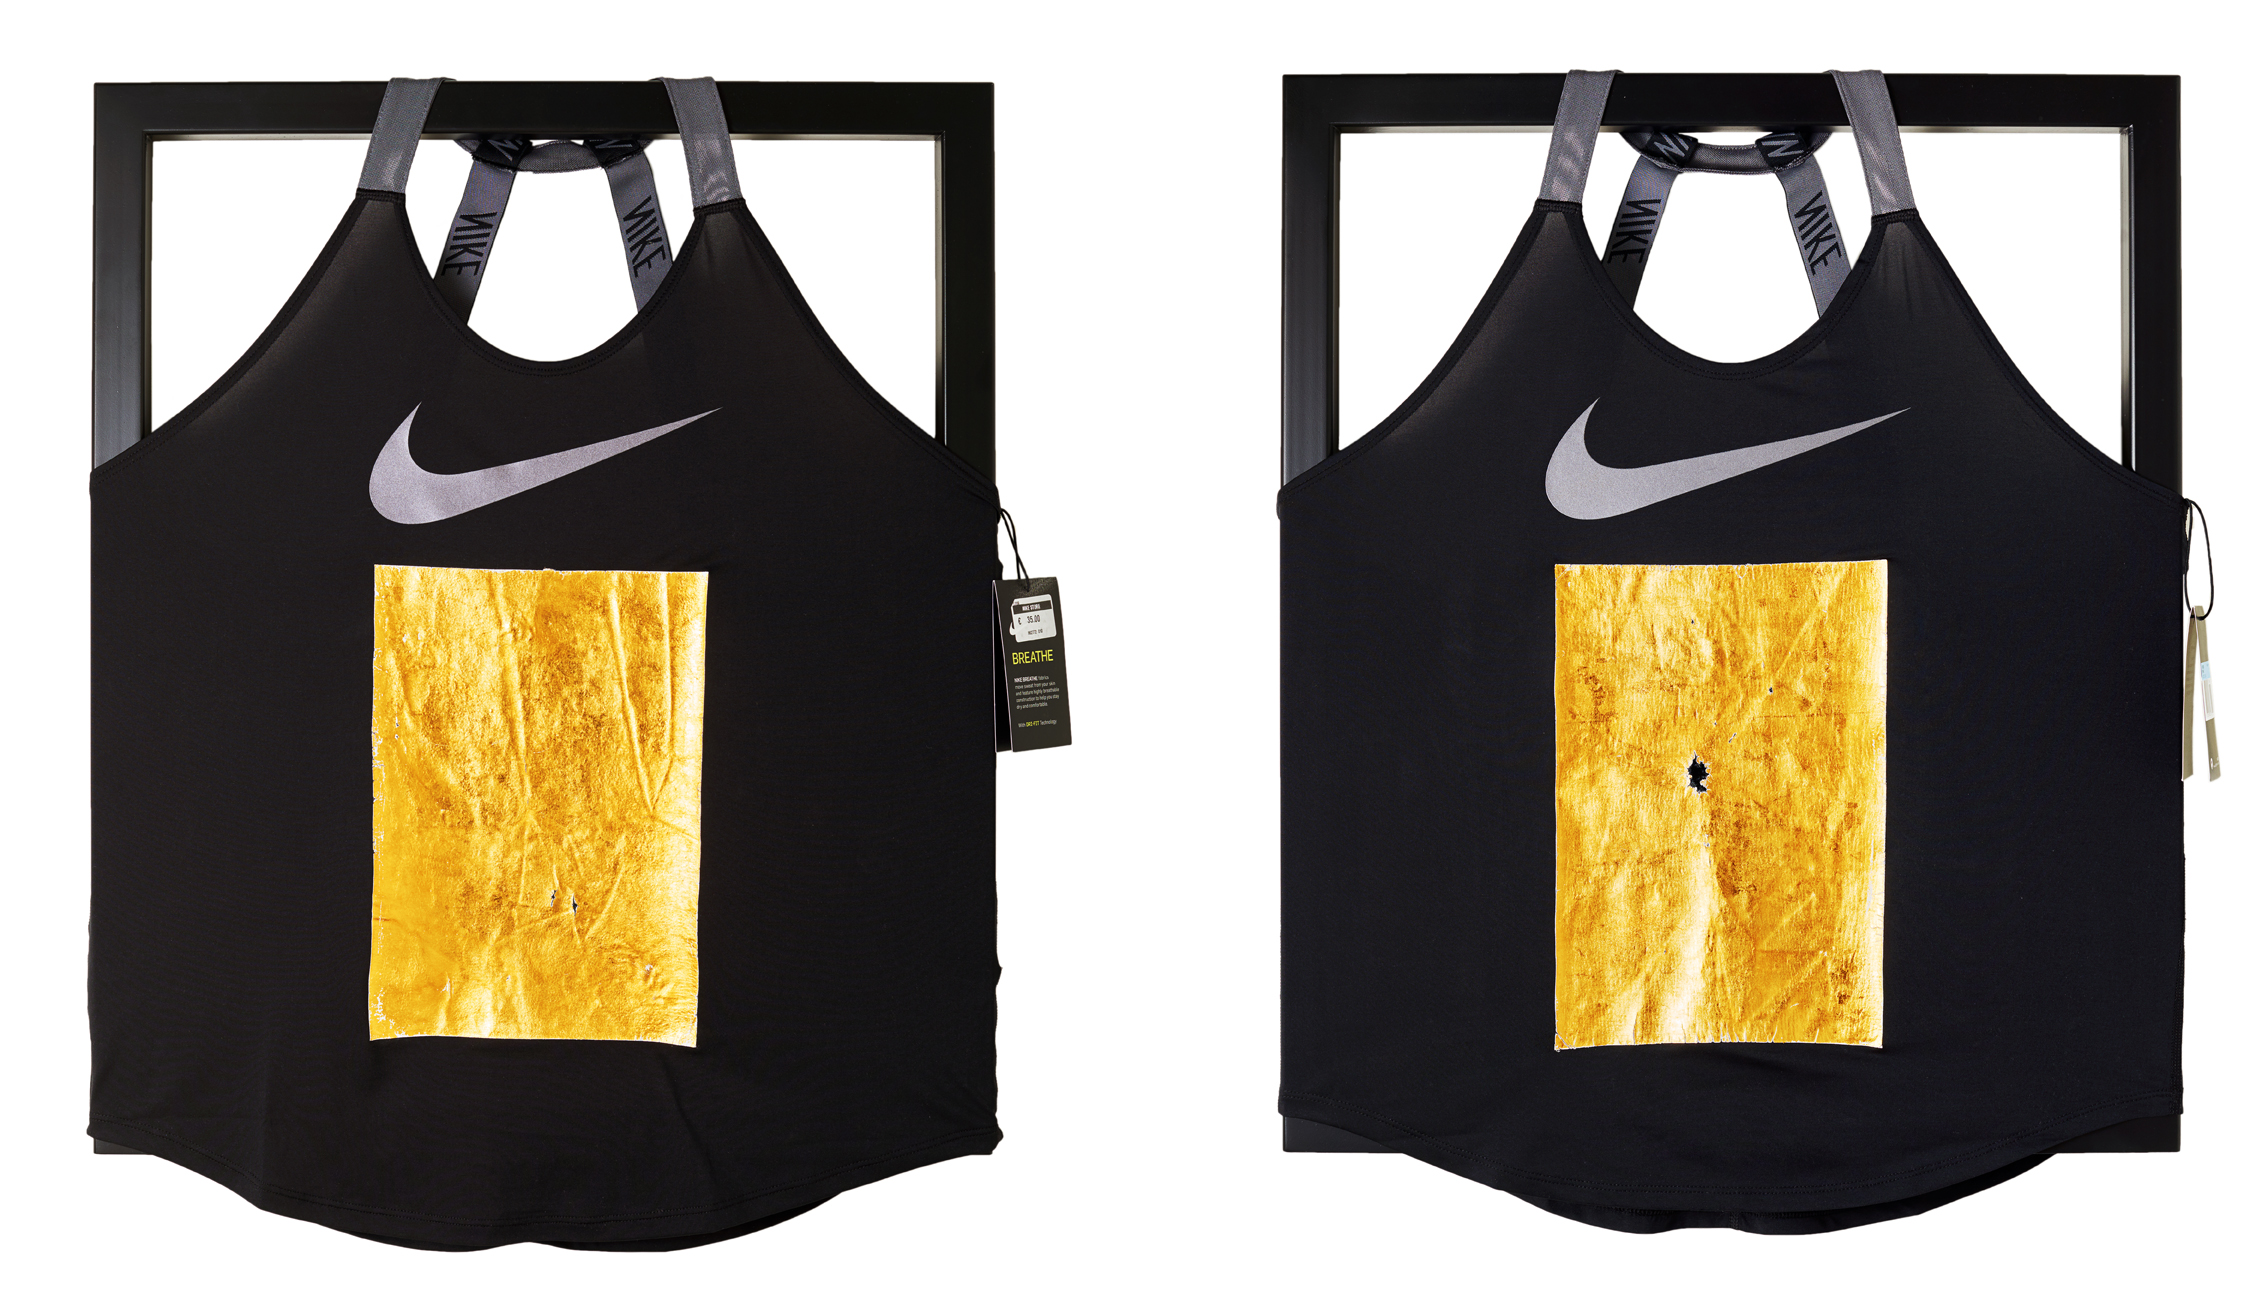 An alle anonymen Meister, 2018  2 part work, 24 karat gold leaf on Nike Dry-Fit tank top, paint on steel  60 × 50 cm, each